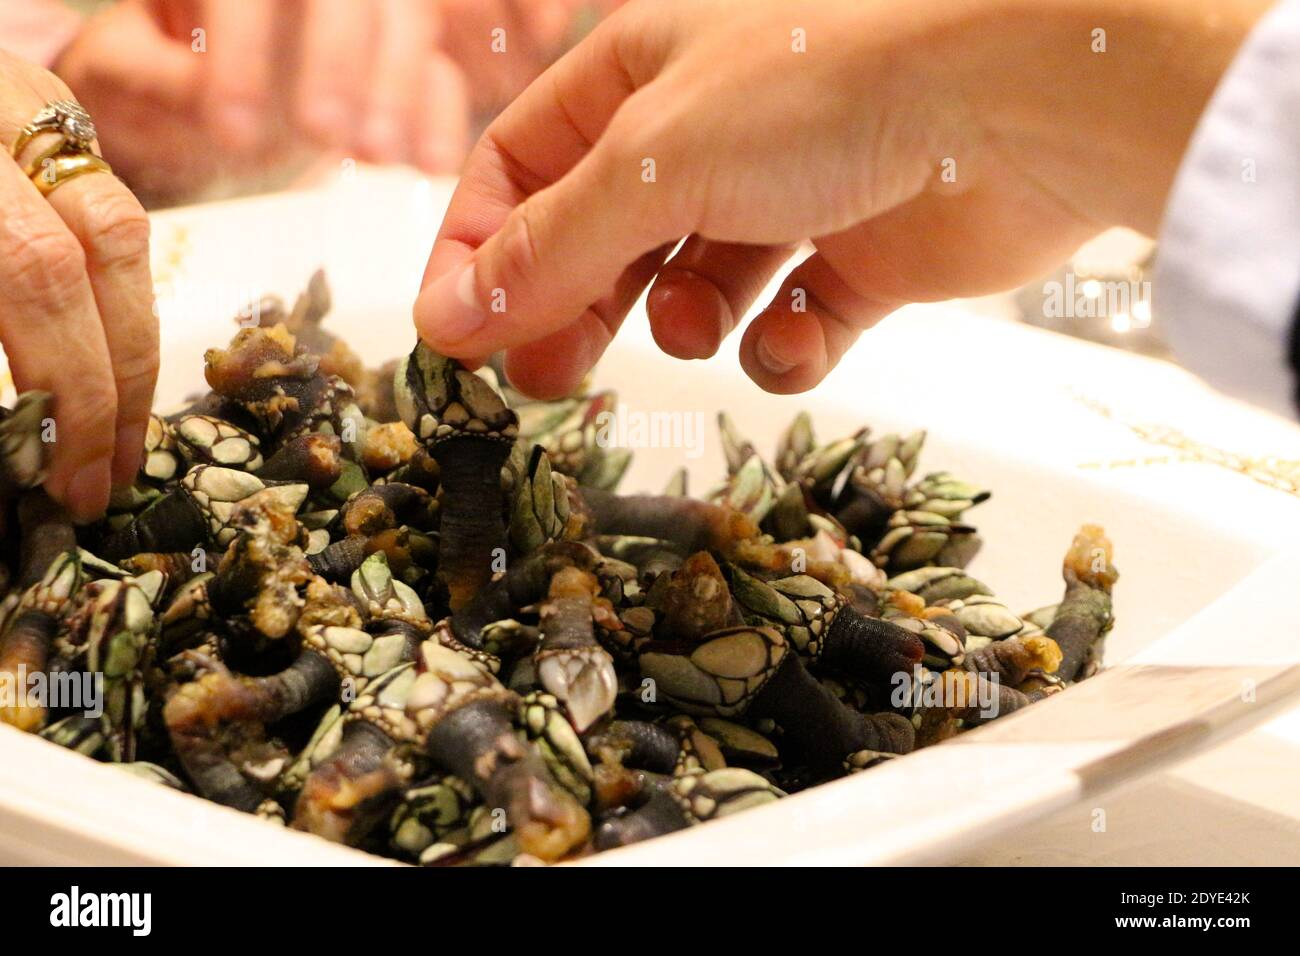 picking-up-by-hand-hot-steaming-percebes-a-type-of-barnacle-from-galicia-spain-traditional-at-christmas-in-spain-santander-cantabria-spain-2020-2DYE42K.jpg